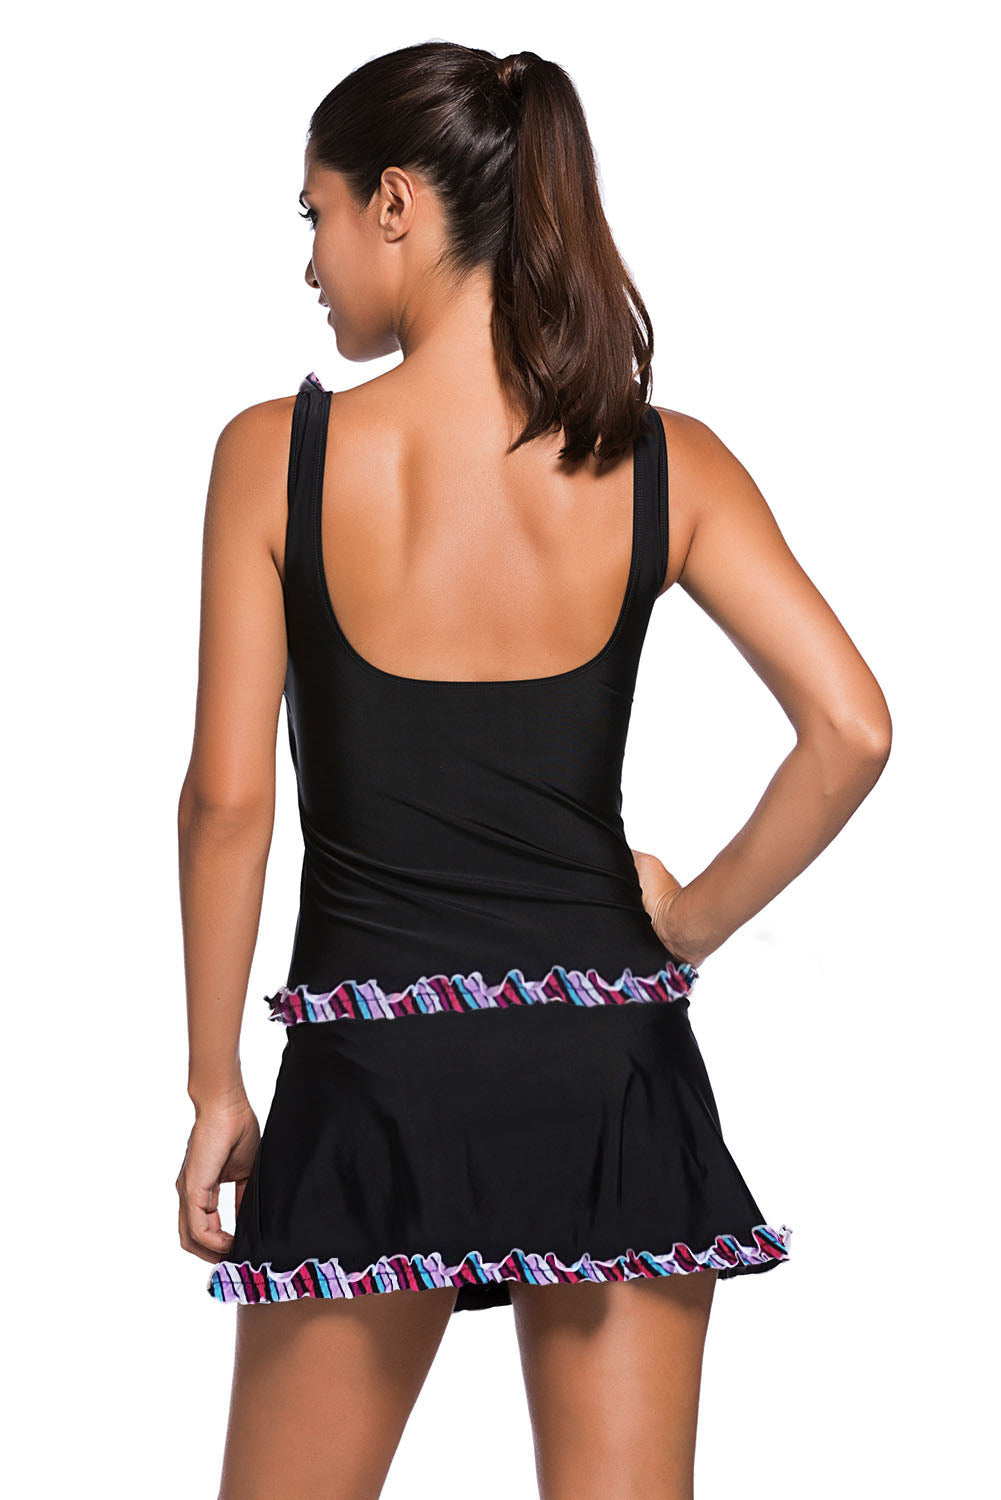 Her Swimsuit Ruffle Trim Purple Tank Top and Skort Tankini Swimwear